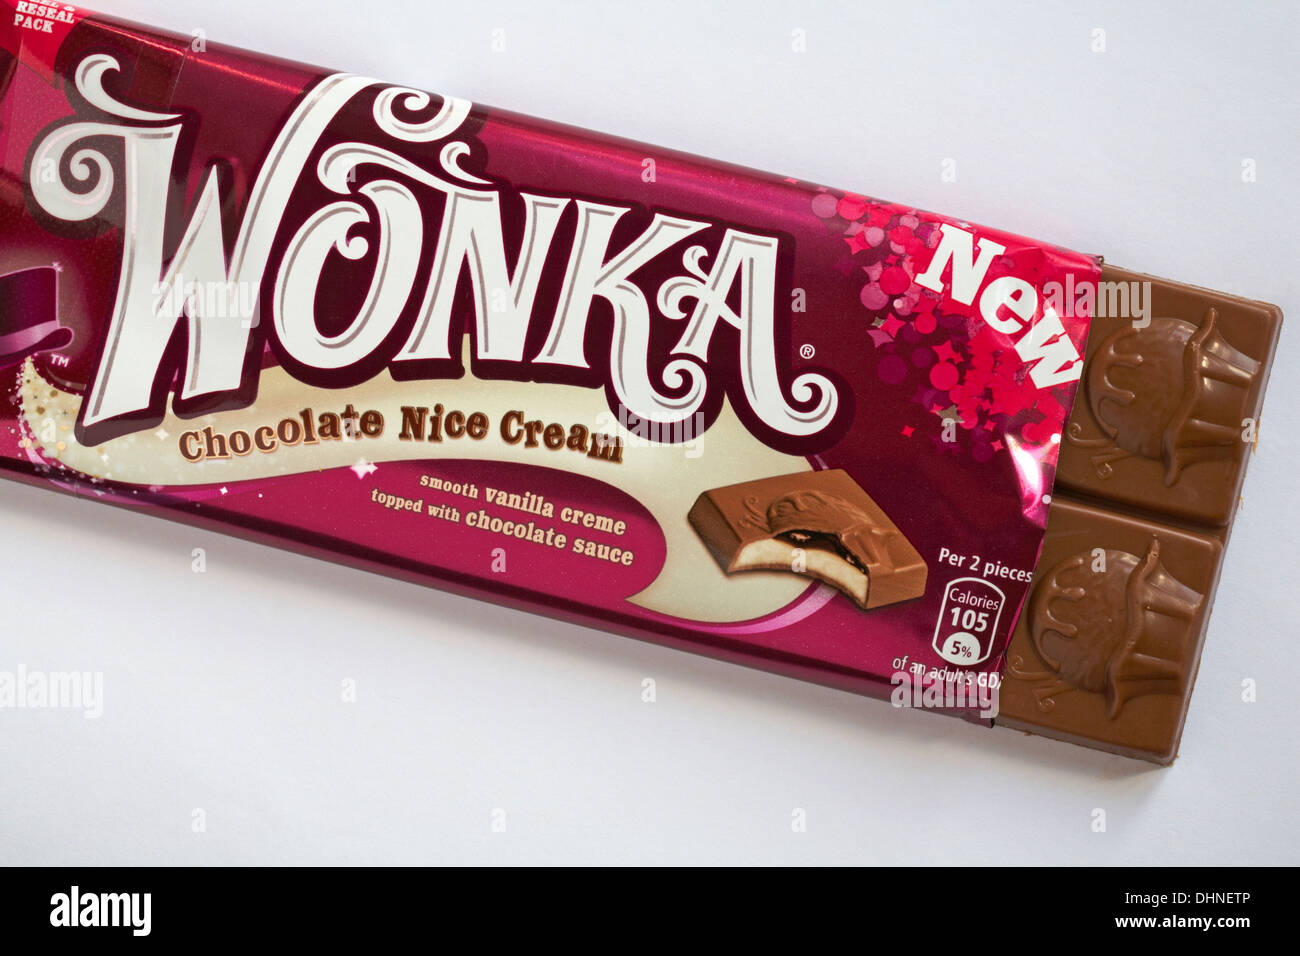 New Wonka Chocolate Nice Cream flavoured chocolate bar out of ...